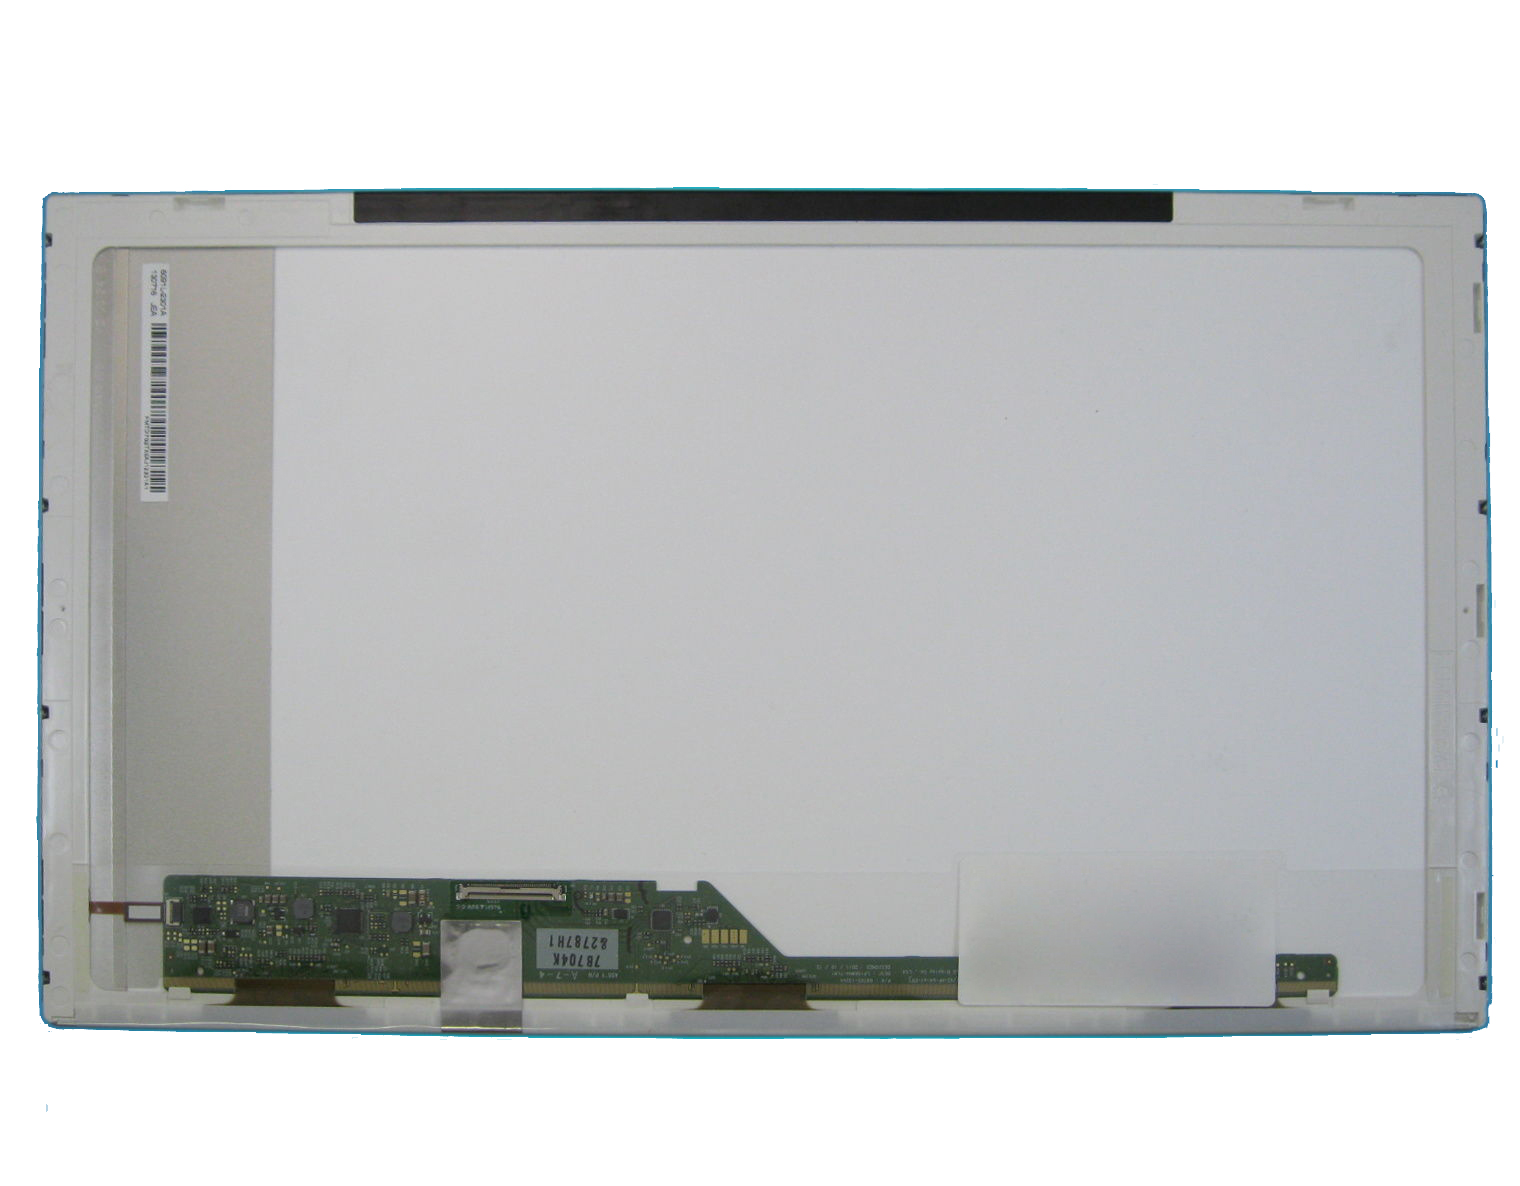 Фотография TTLCD Laptop LCD Screen 15.6 inch for HP-Compaq HP G62-373DX perfect screen without dead piexls